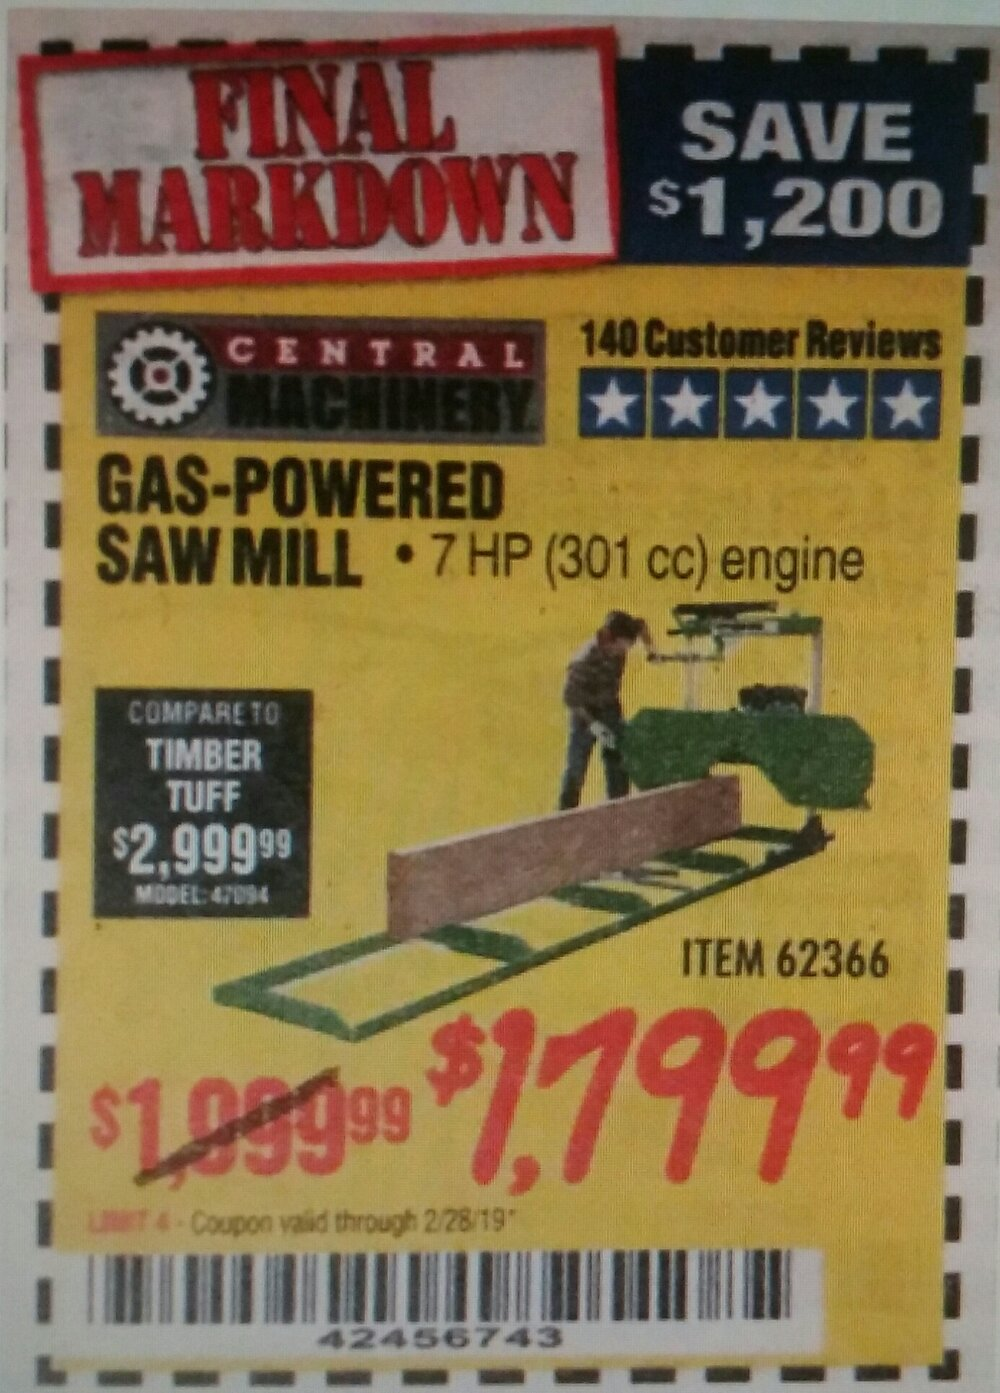 Harbor Freight Coupon, HF Coupons - Gas-powered Saw Mill